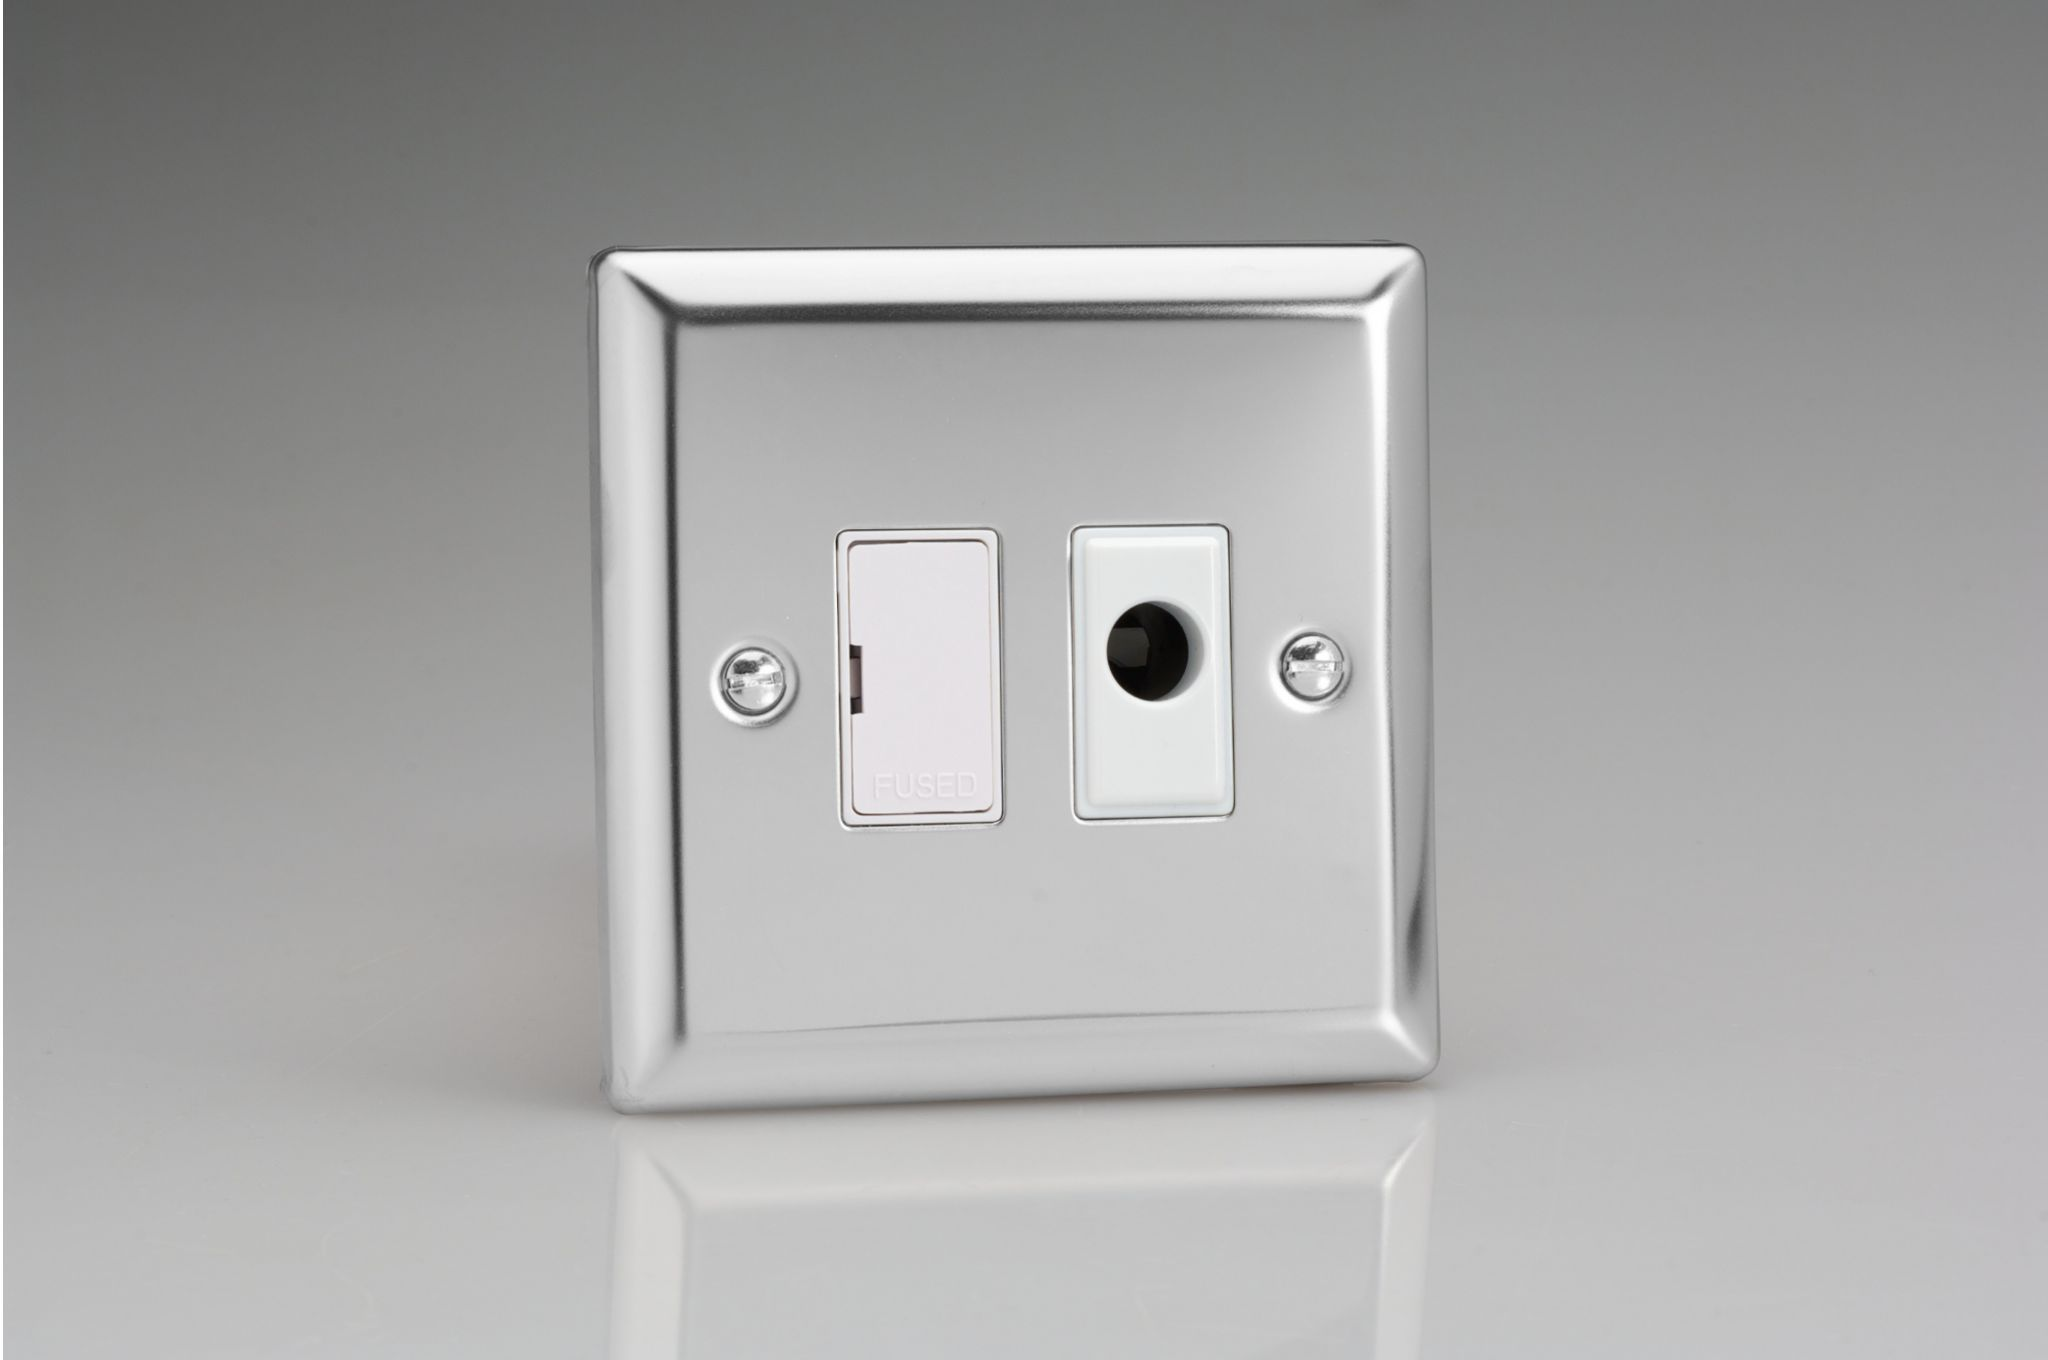 Varilight 13a Unswitched Fused Spur Flex Outlet Mirror